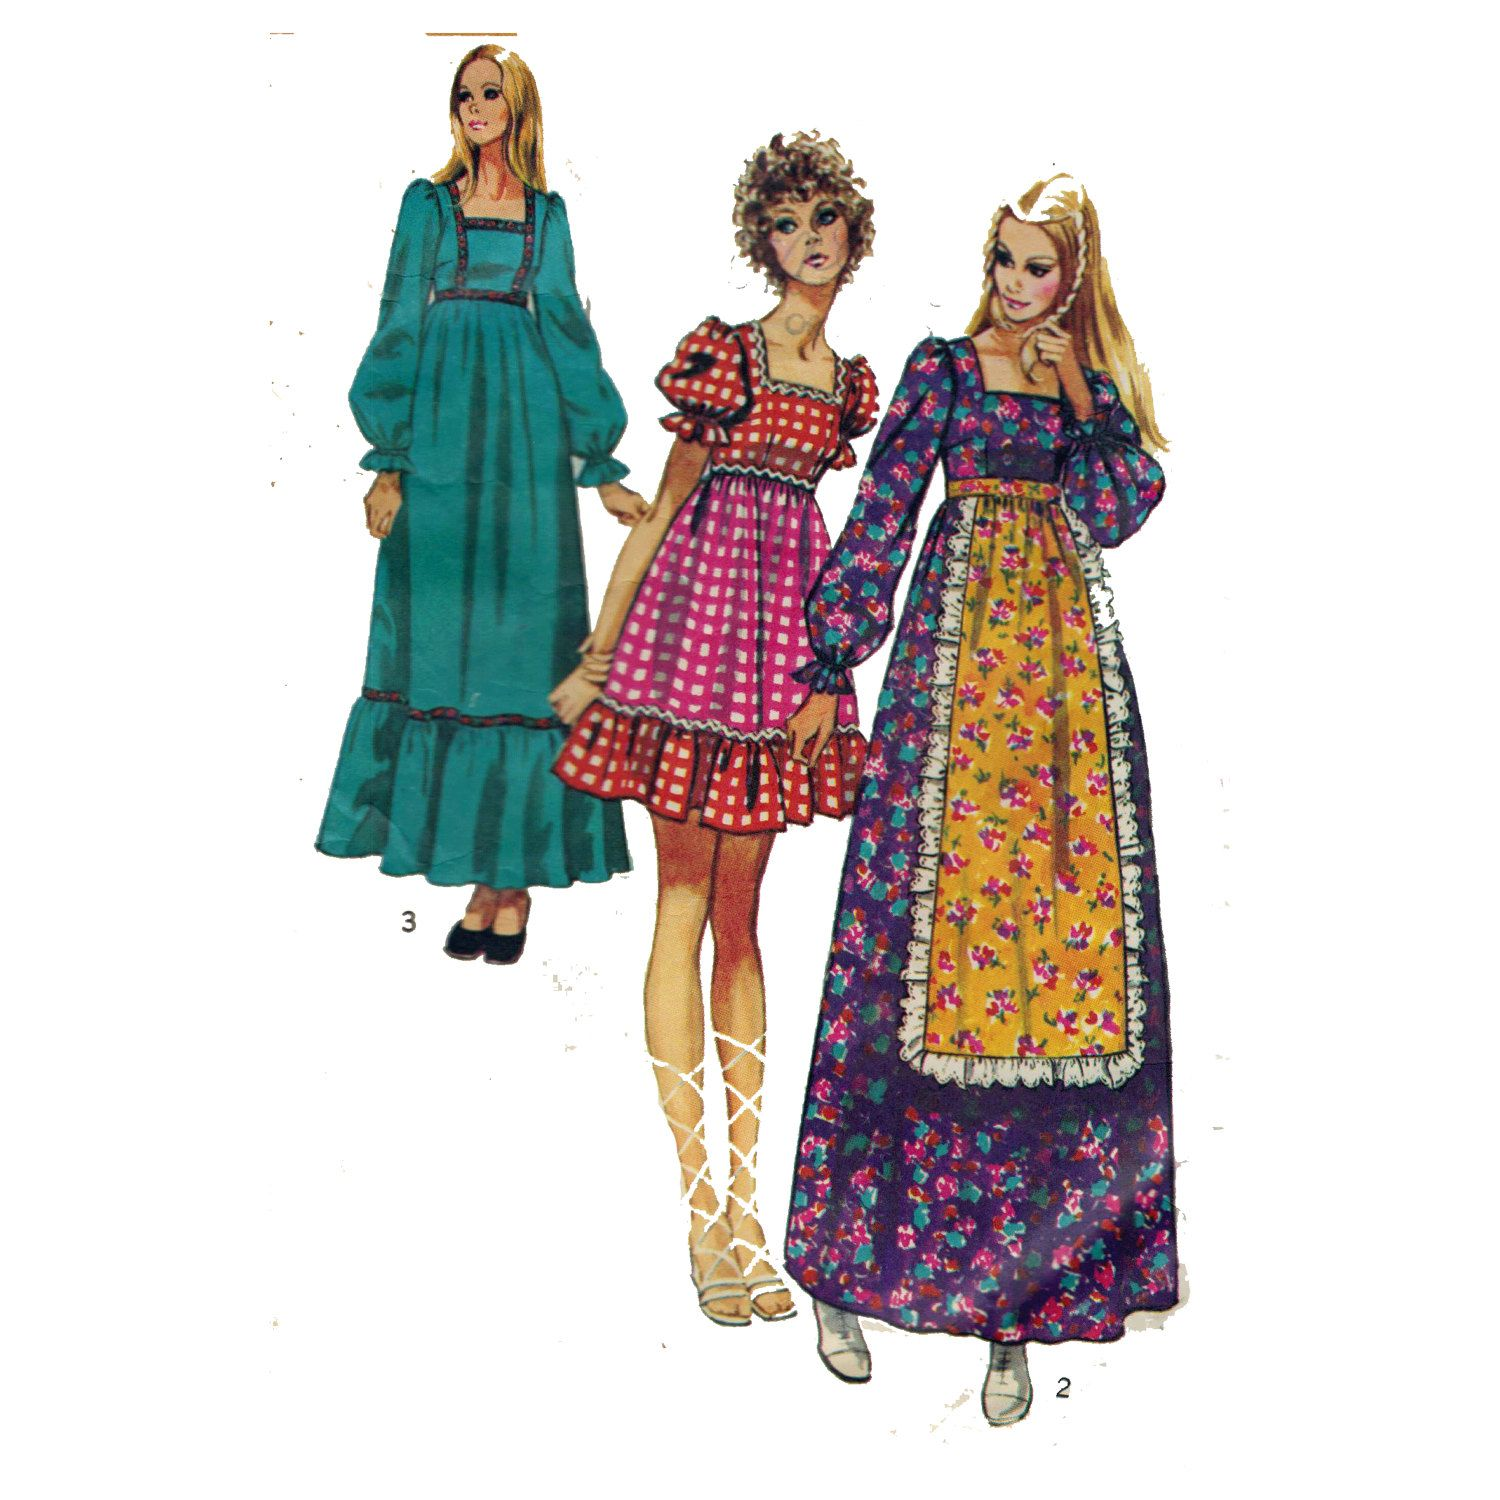 70s Prairie Hippie Boho Dress With Ruffled Skirt Maxi Dress Sewing Pattern Vintage Size 14 Bust 36 Simplicity 9486 Boho Hippie Dress Simplicity Patterns Dresses Maxi Dress Pattern Sewing [ 1500 x 1500 Pixel ]